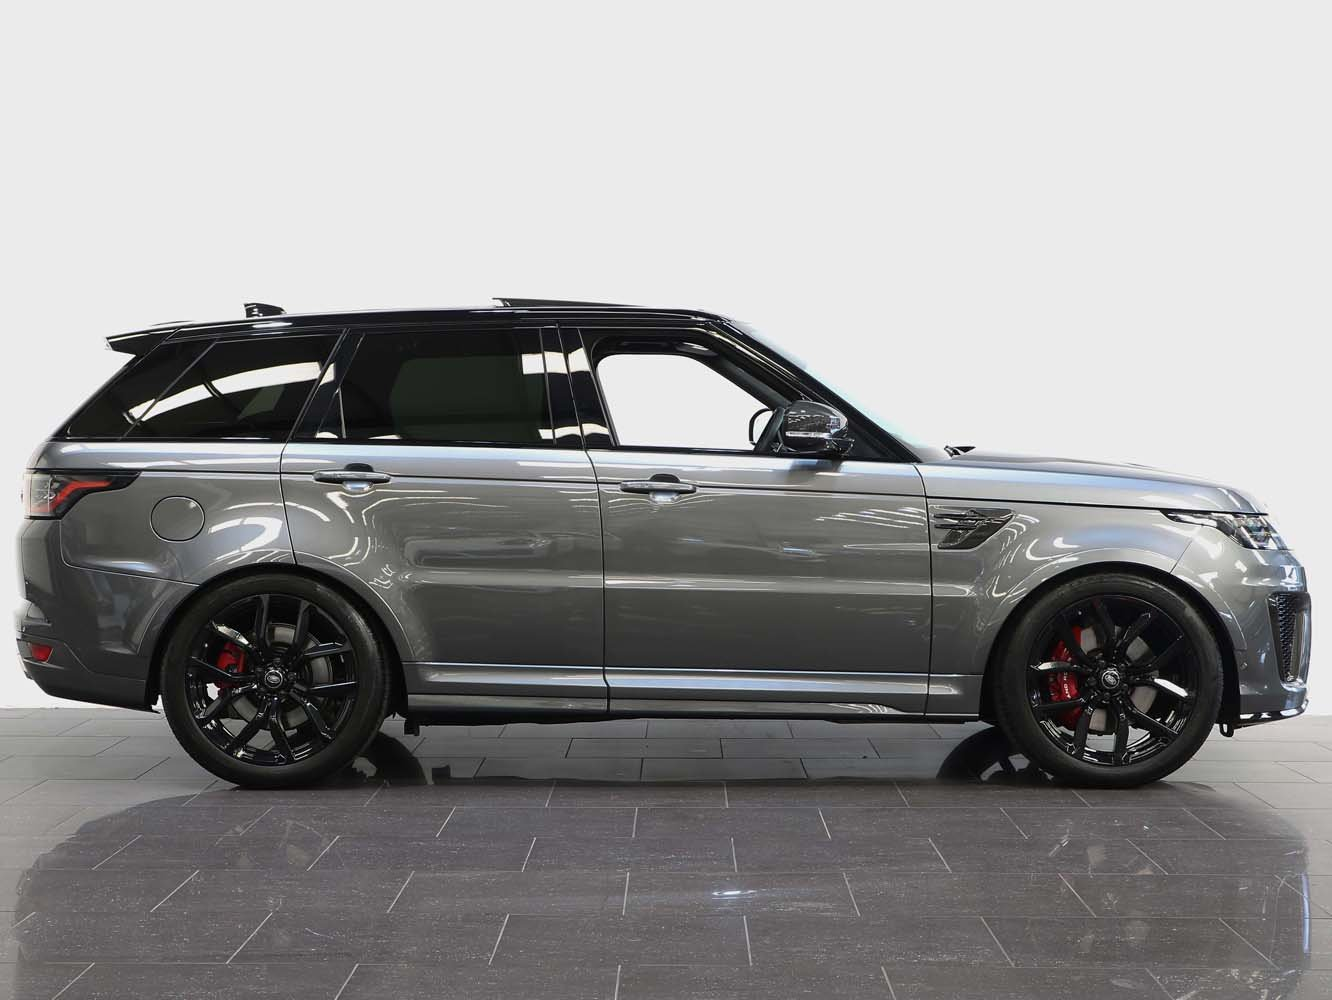 2019 19 RANGE ROVER SPORT SVR 5.0 V8 AUTO For Sale (picture 2 of 6)